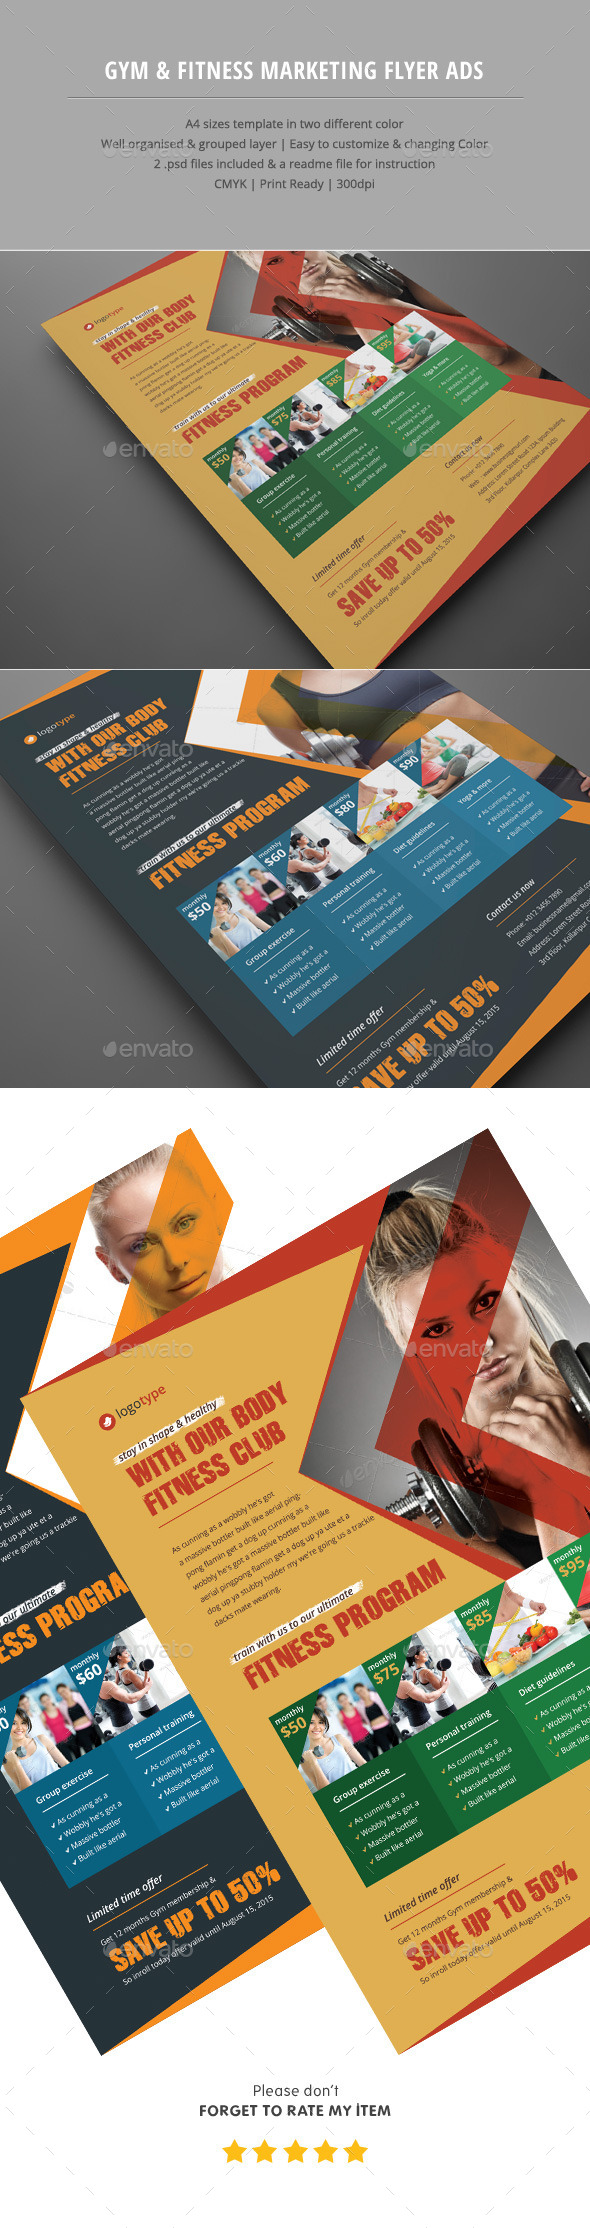 Gym & Fitness Club Flyer Ads - Corporate Flyers